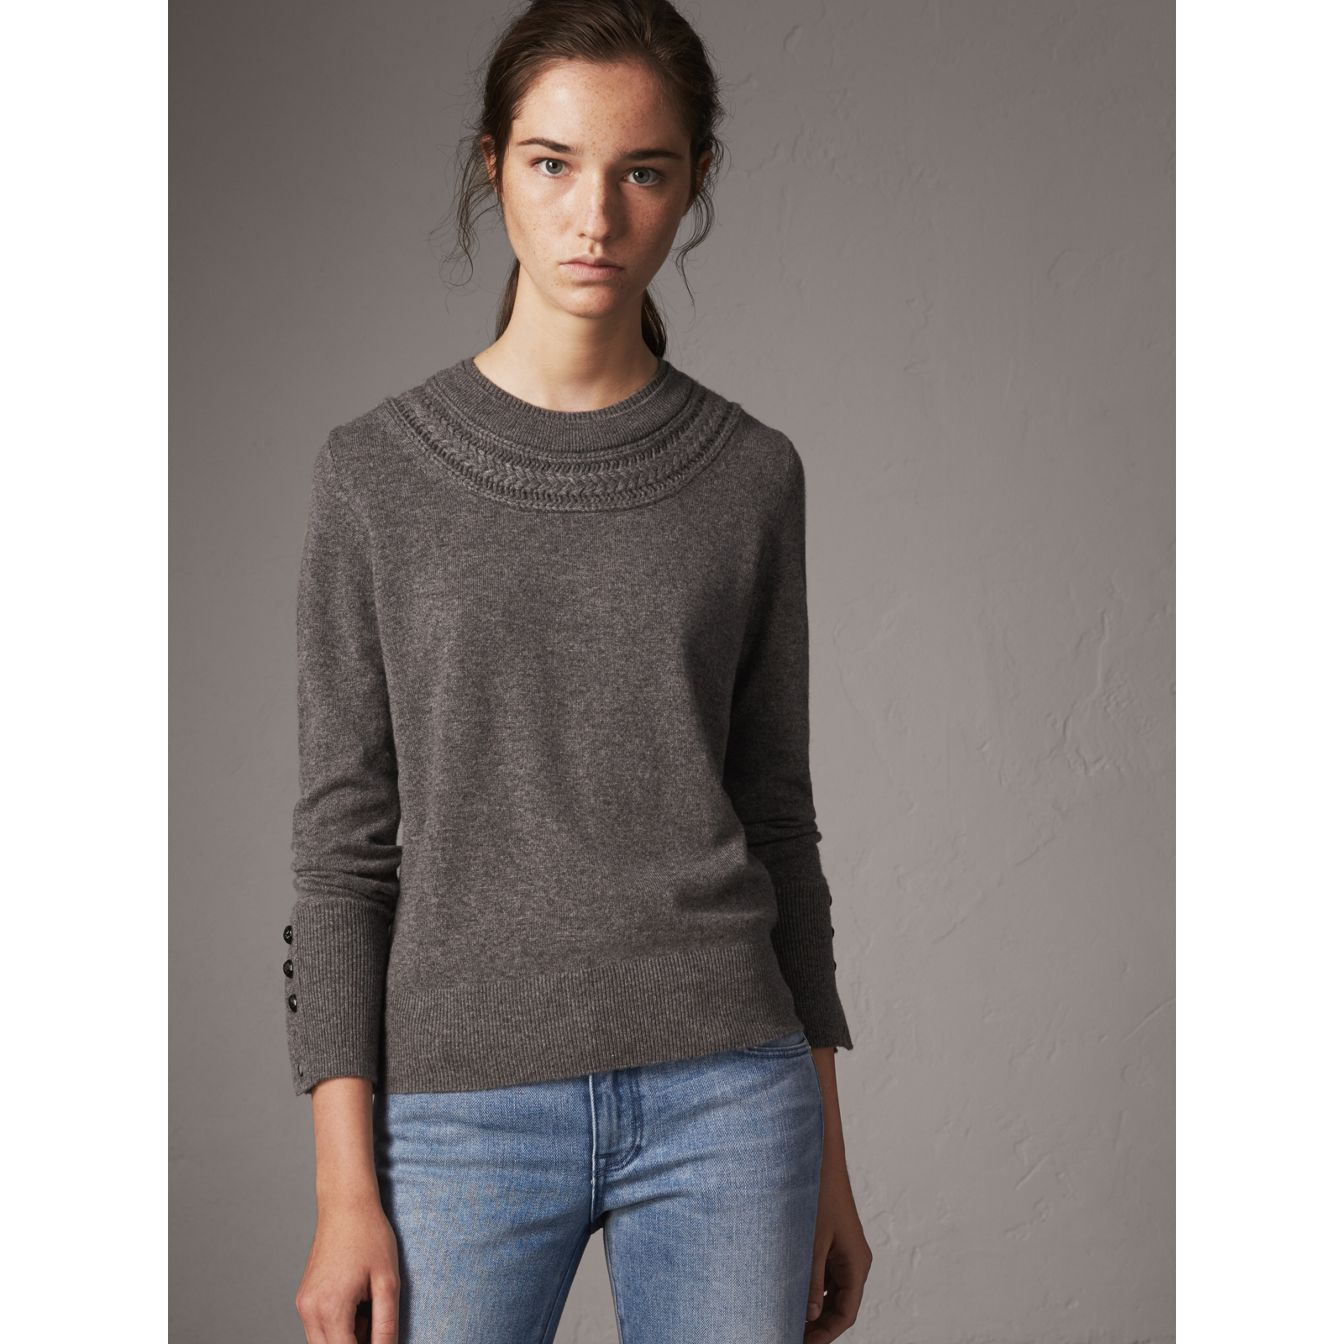 af488d4311f ... starting to see more lightweight sweaters featured in their fall and  winter lines. These are great pieces that are easily paired or layered  later in the ...